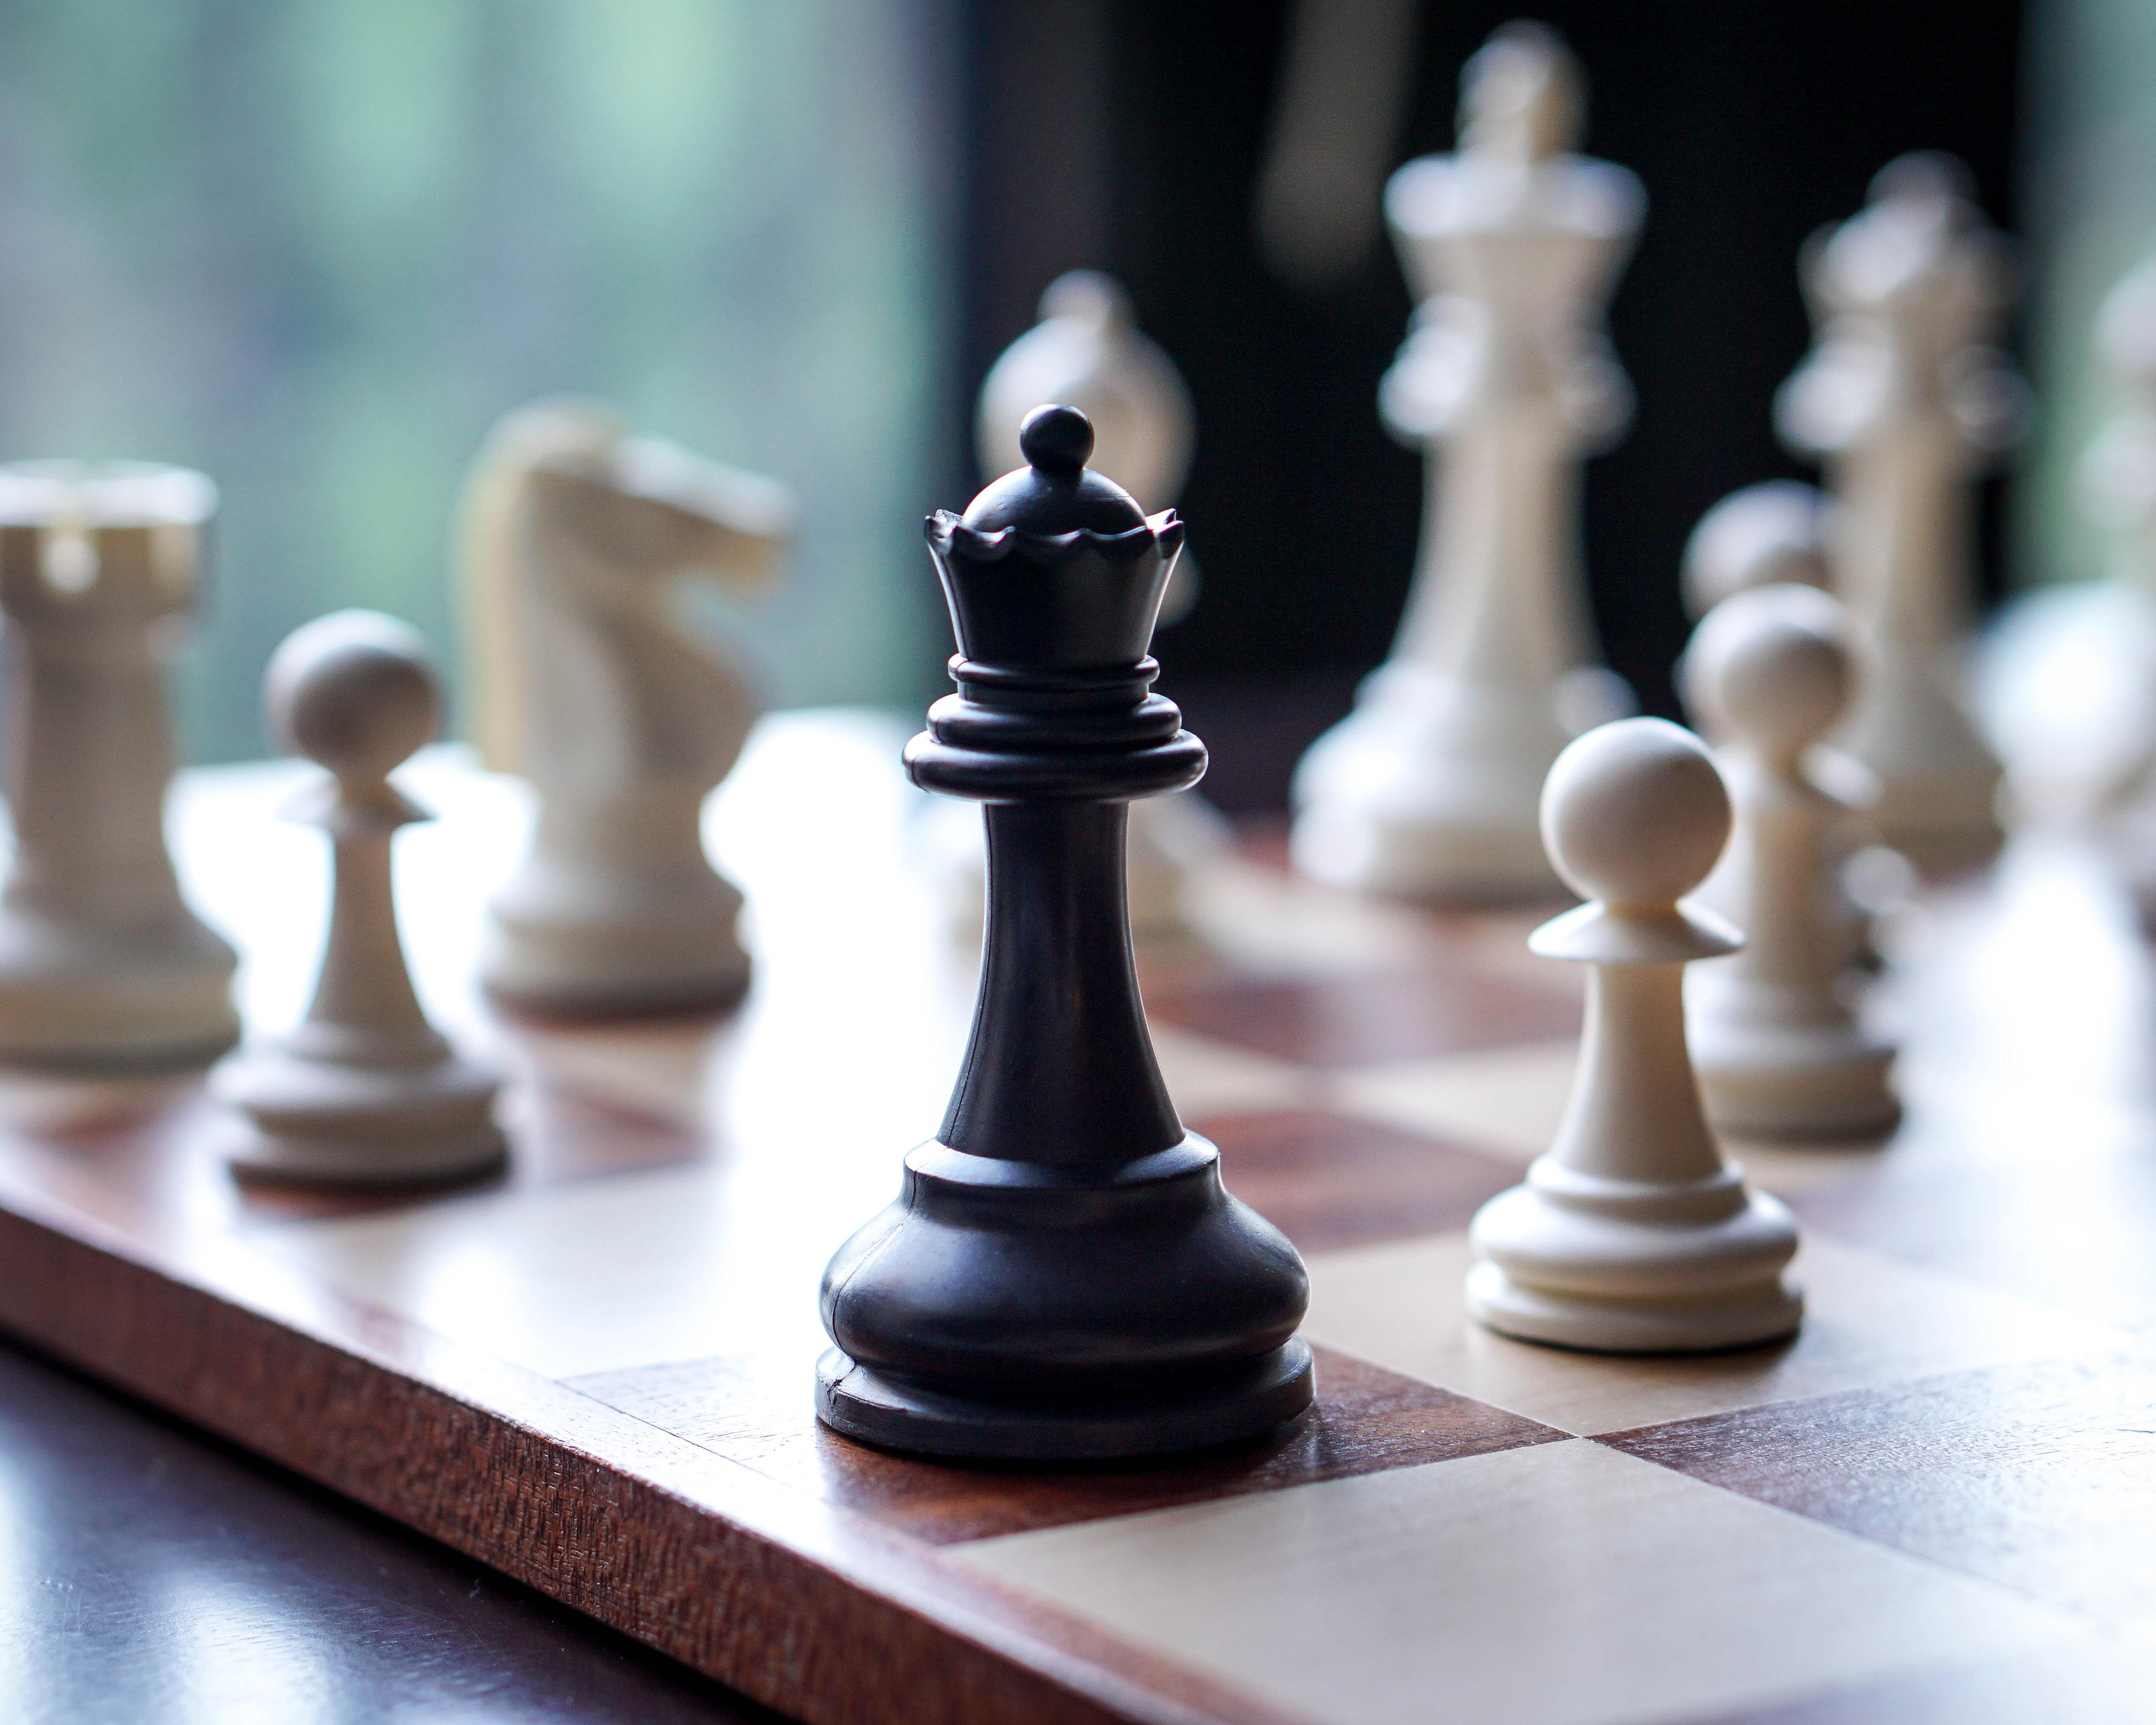 Fool's Mate | Fastest Checkmate in Chess - Chess com